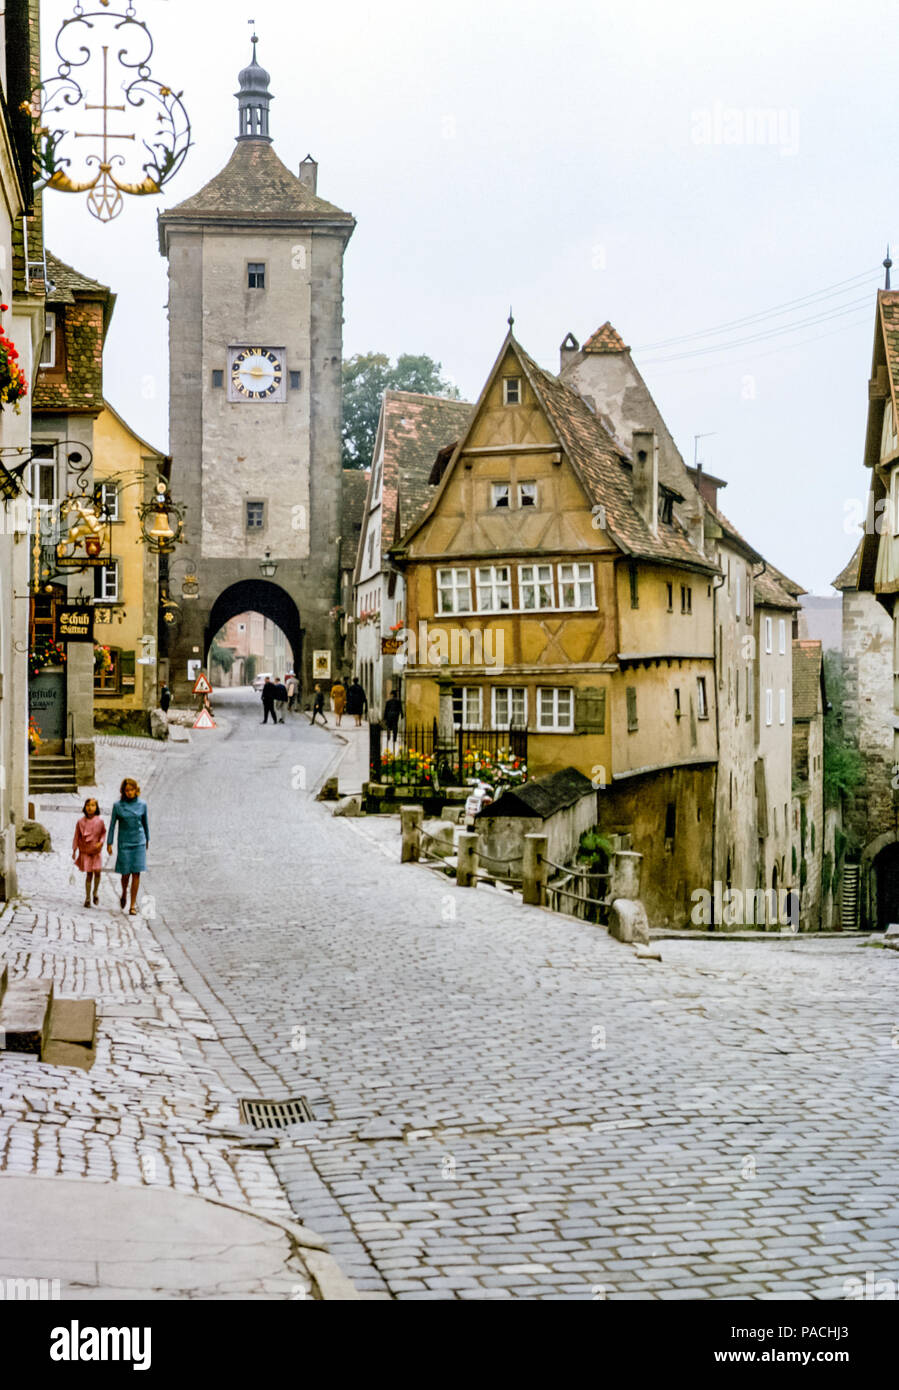 woman-and-girl-walking-down-old-cobbled-